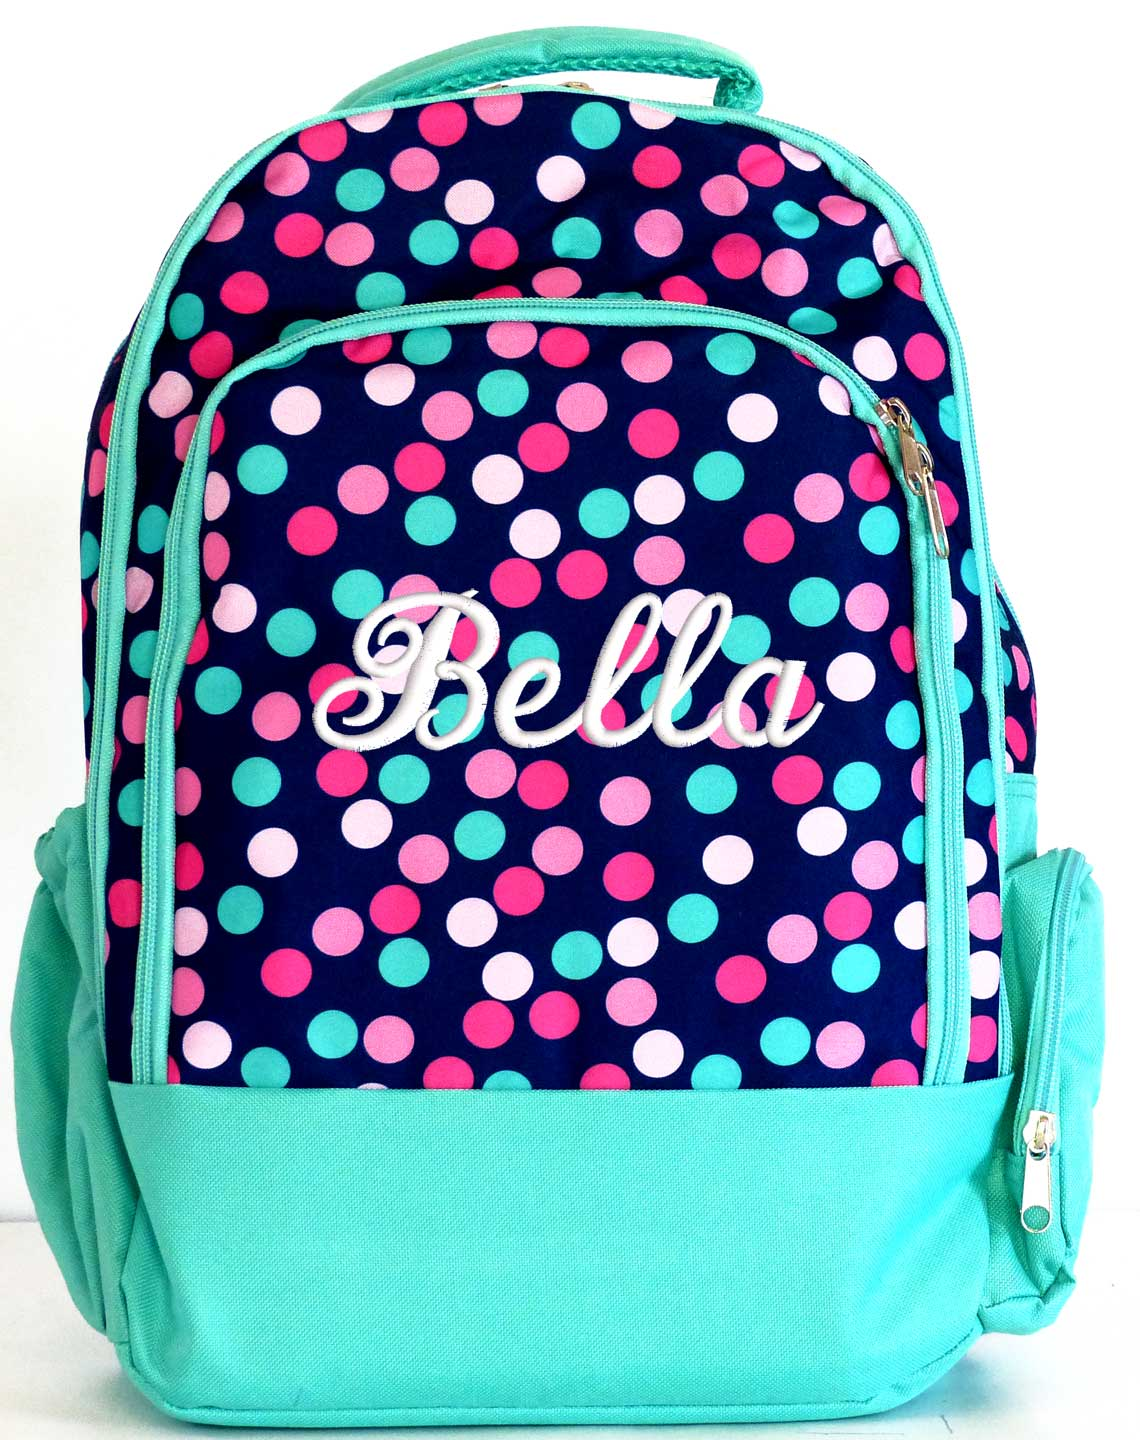 Monogrammed Backpacks For Girls CJksnB9E